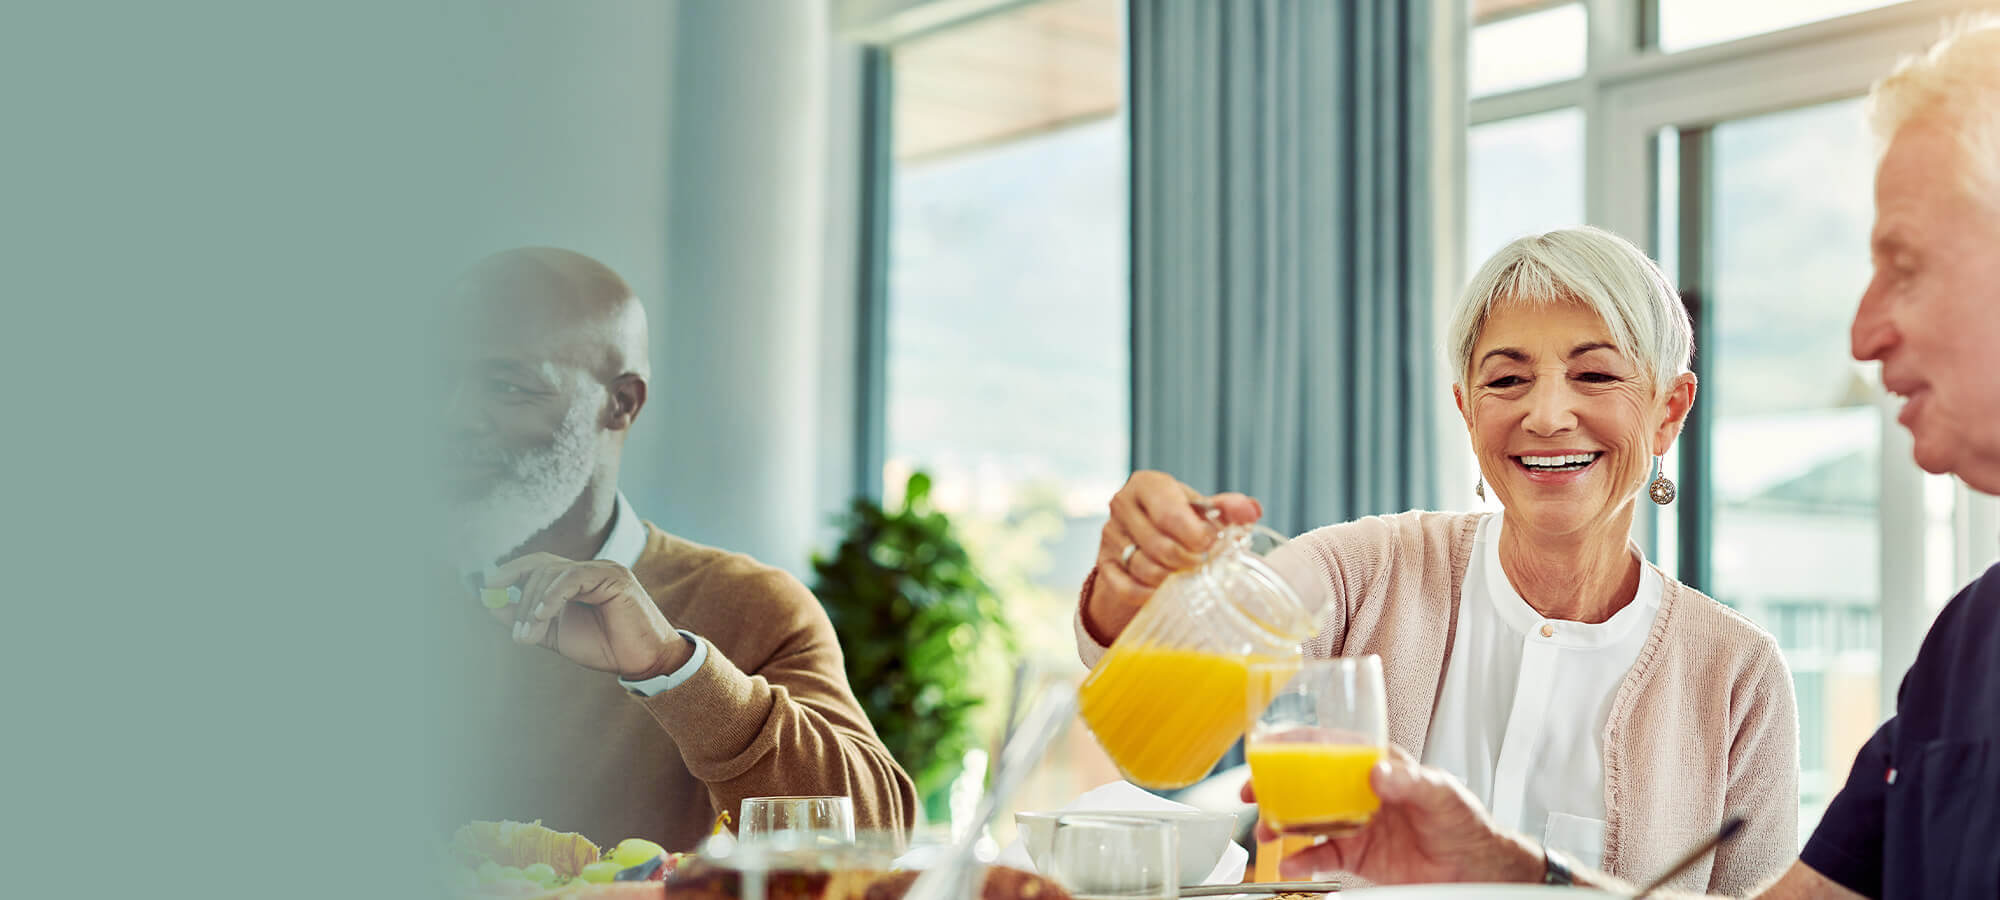 Group of friends gather at breakfast smiling in brightly lit room